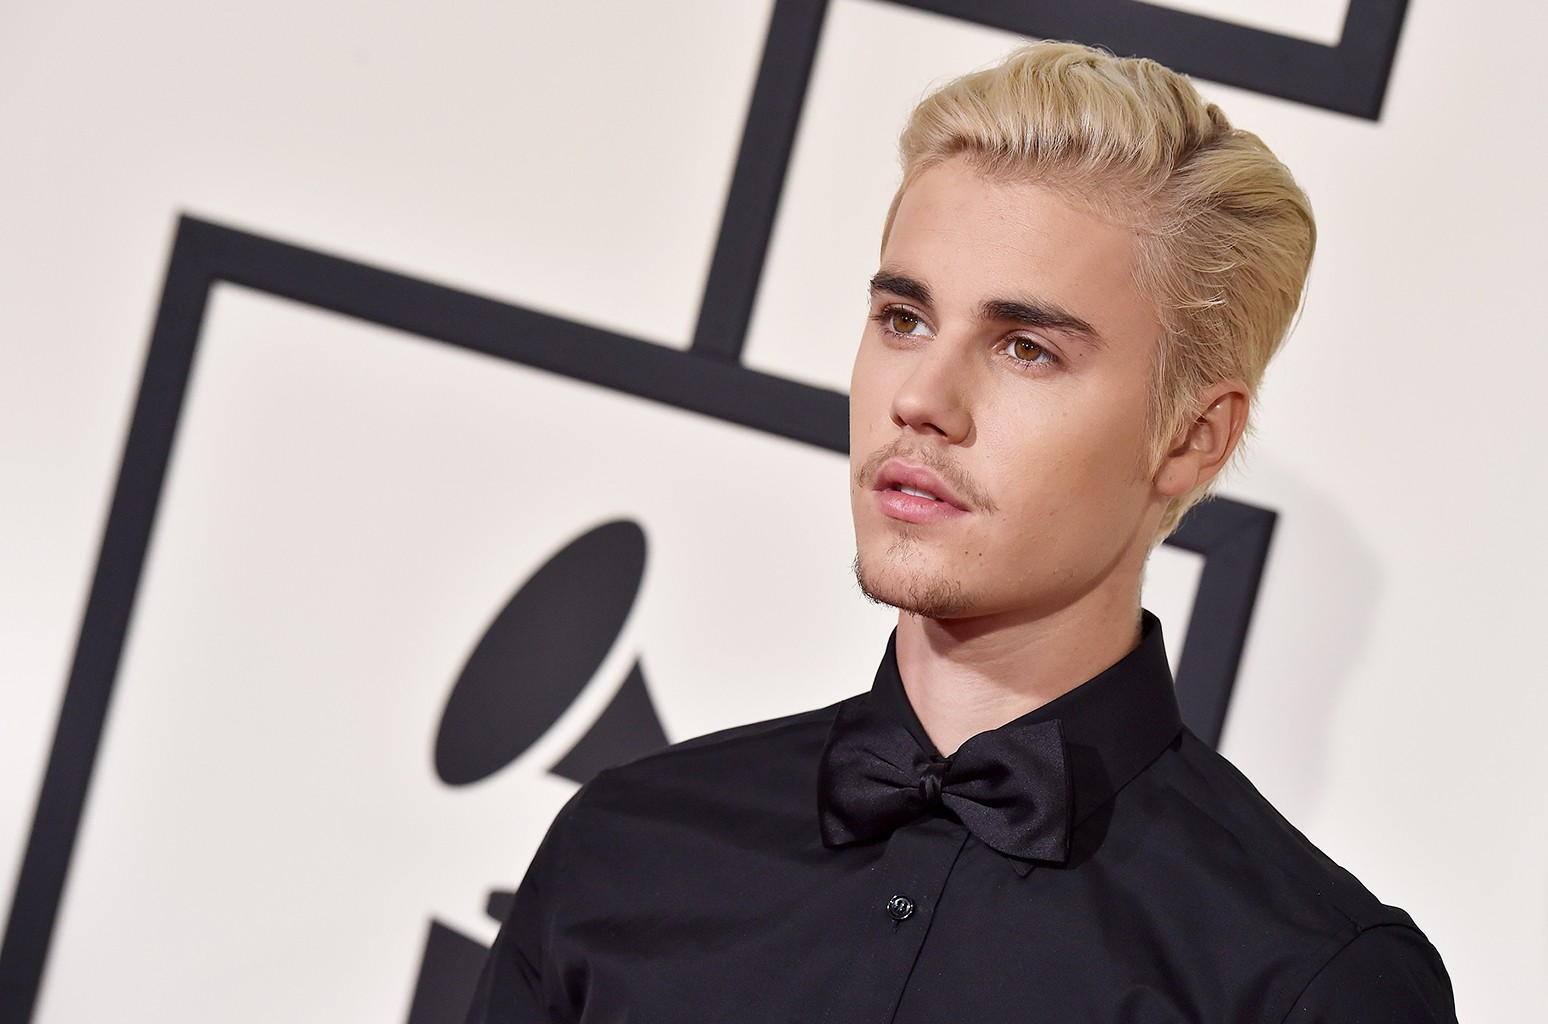 Justin Bieber arrives at The 58th Grammy Awards at Staples Center on Feb. 15, 2016 in Los Angeles.